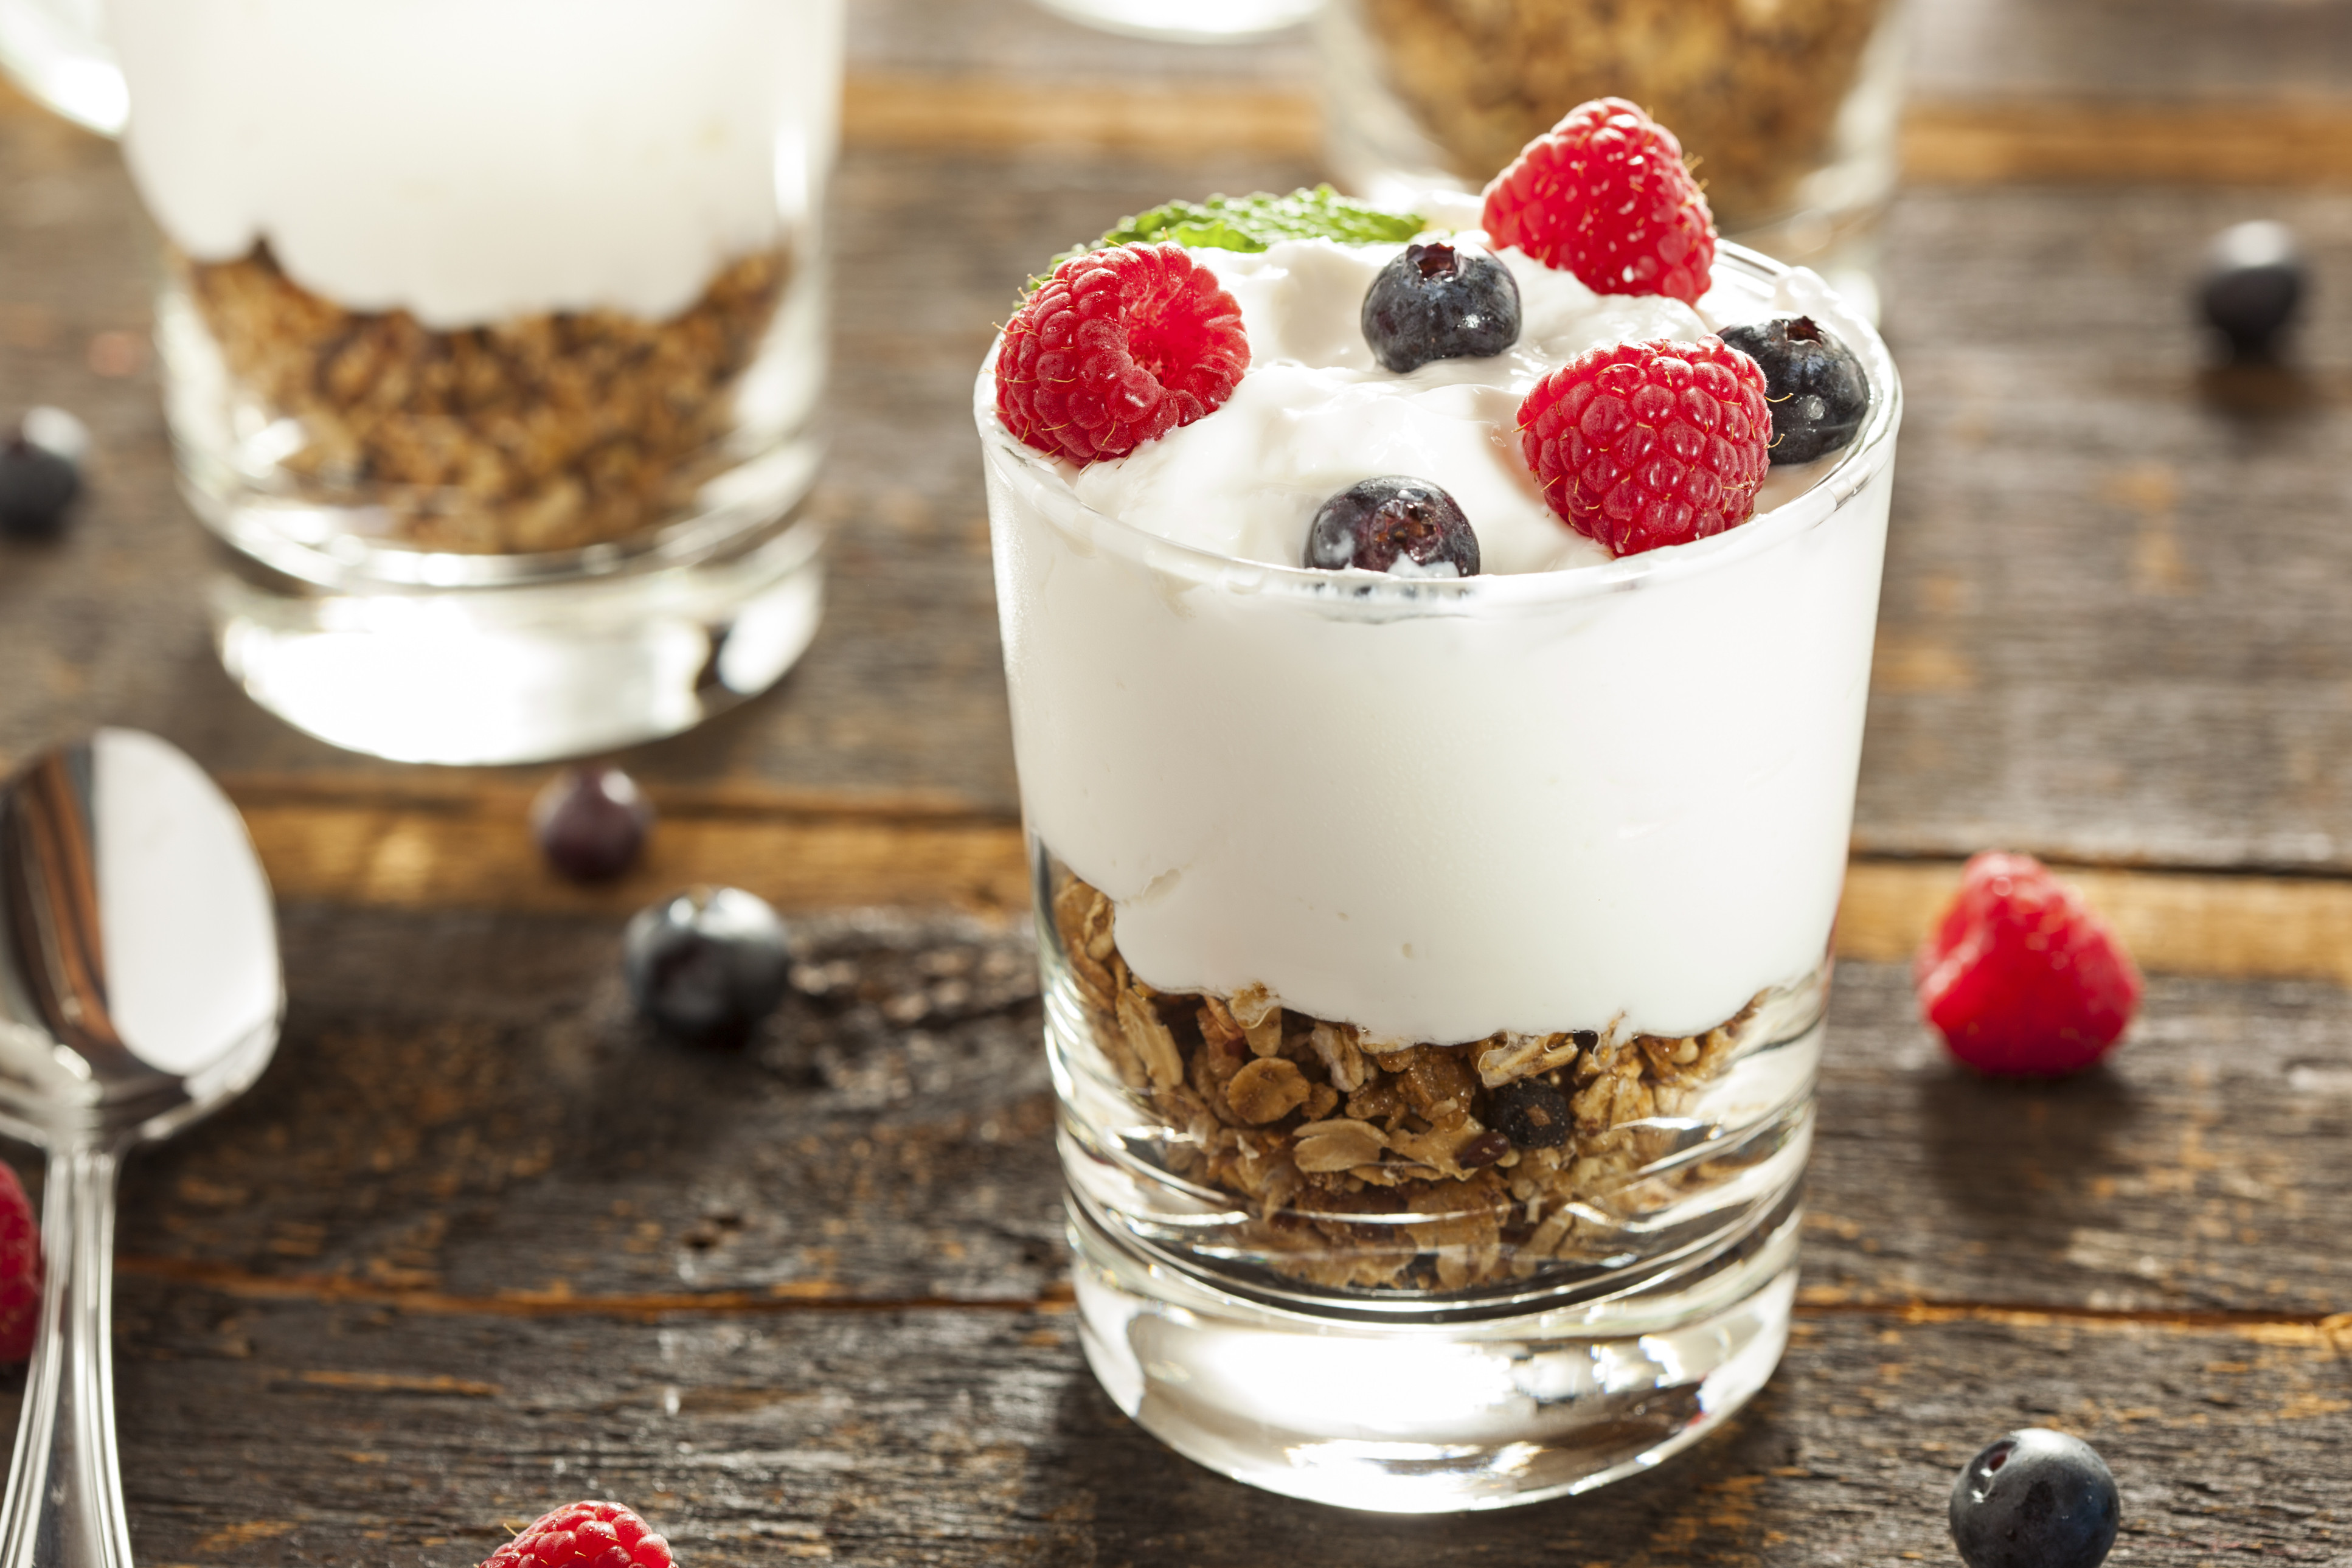 Healthy Afternoon Snacks  What is the best afternoon snack to curb hunger